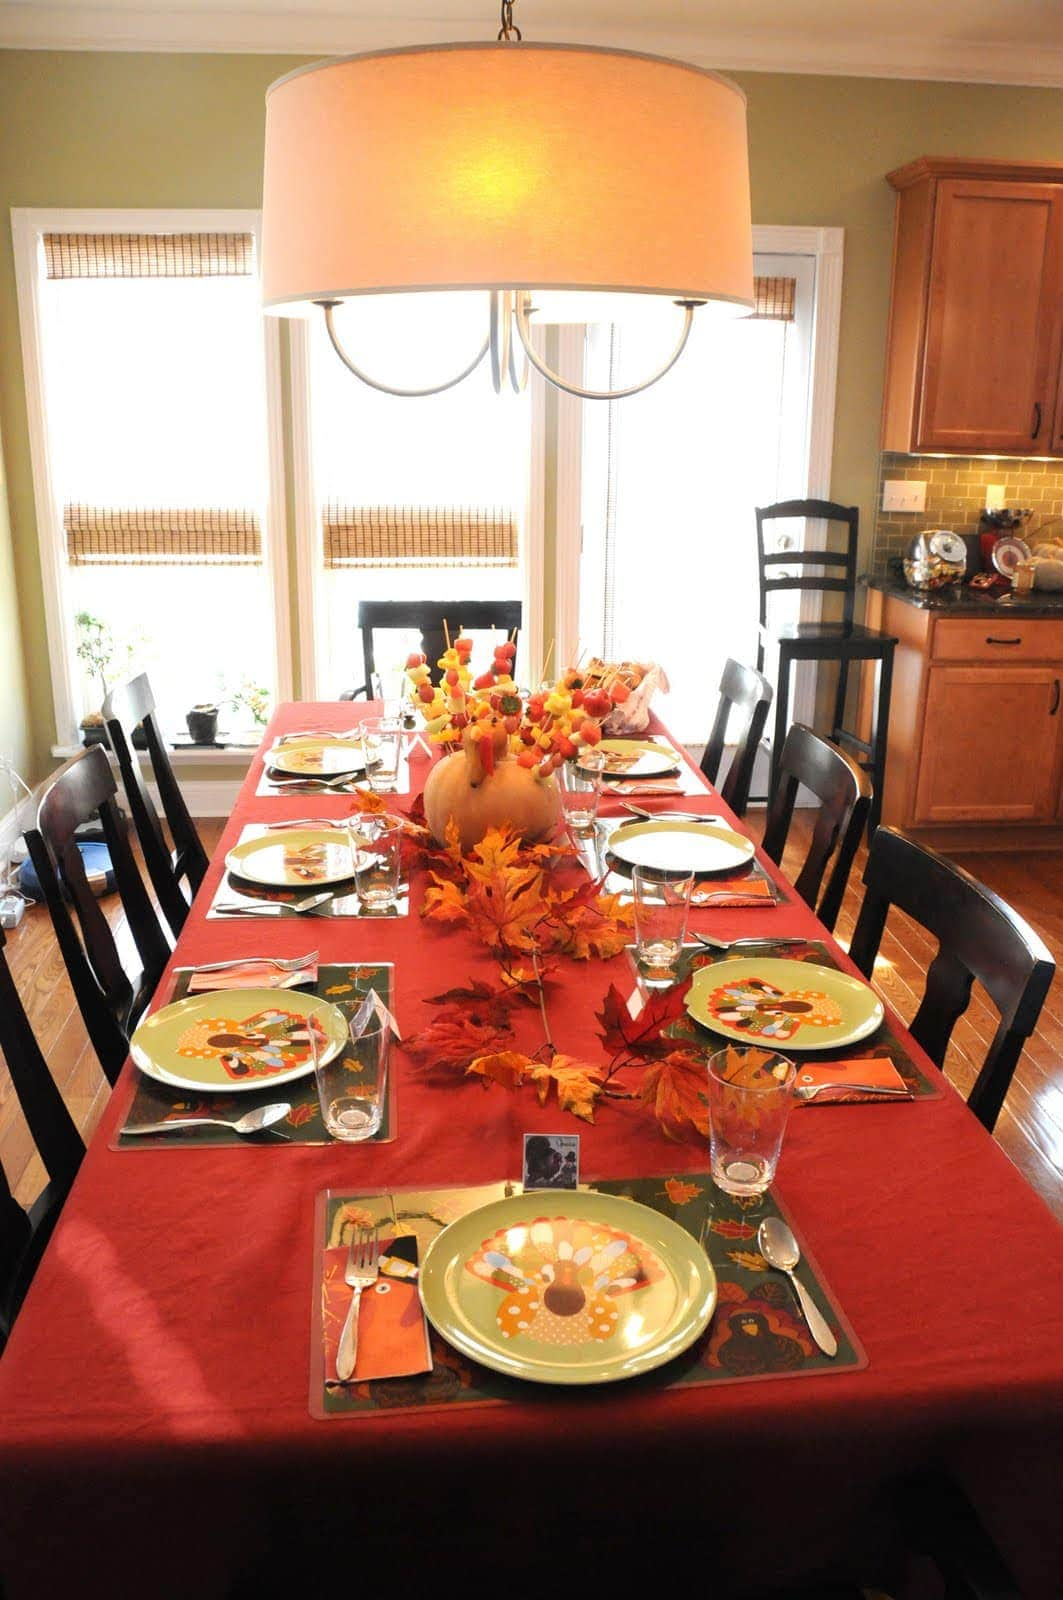 Best Thanksgiving Decor The Polkadot Chair This Month